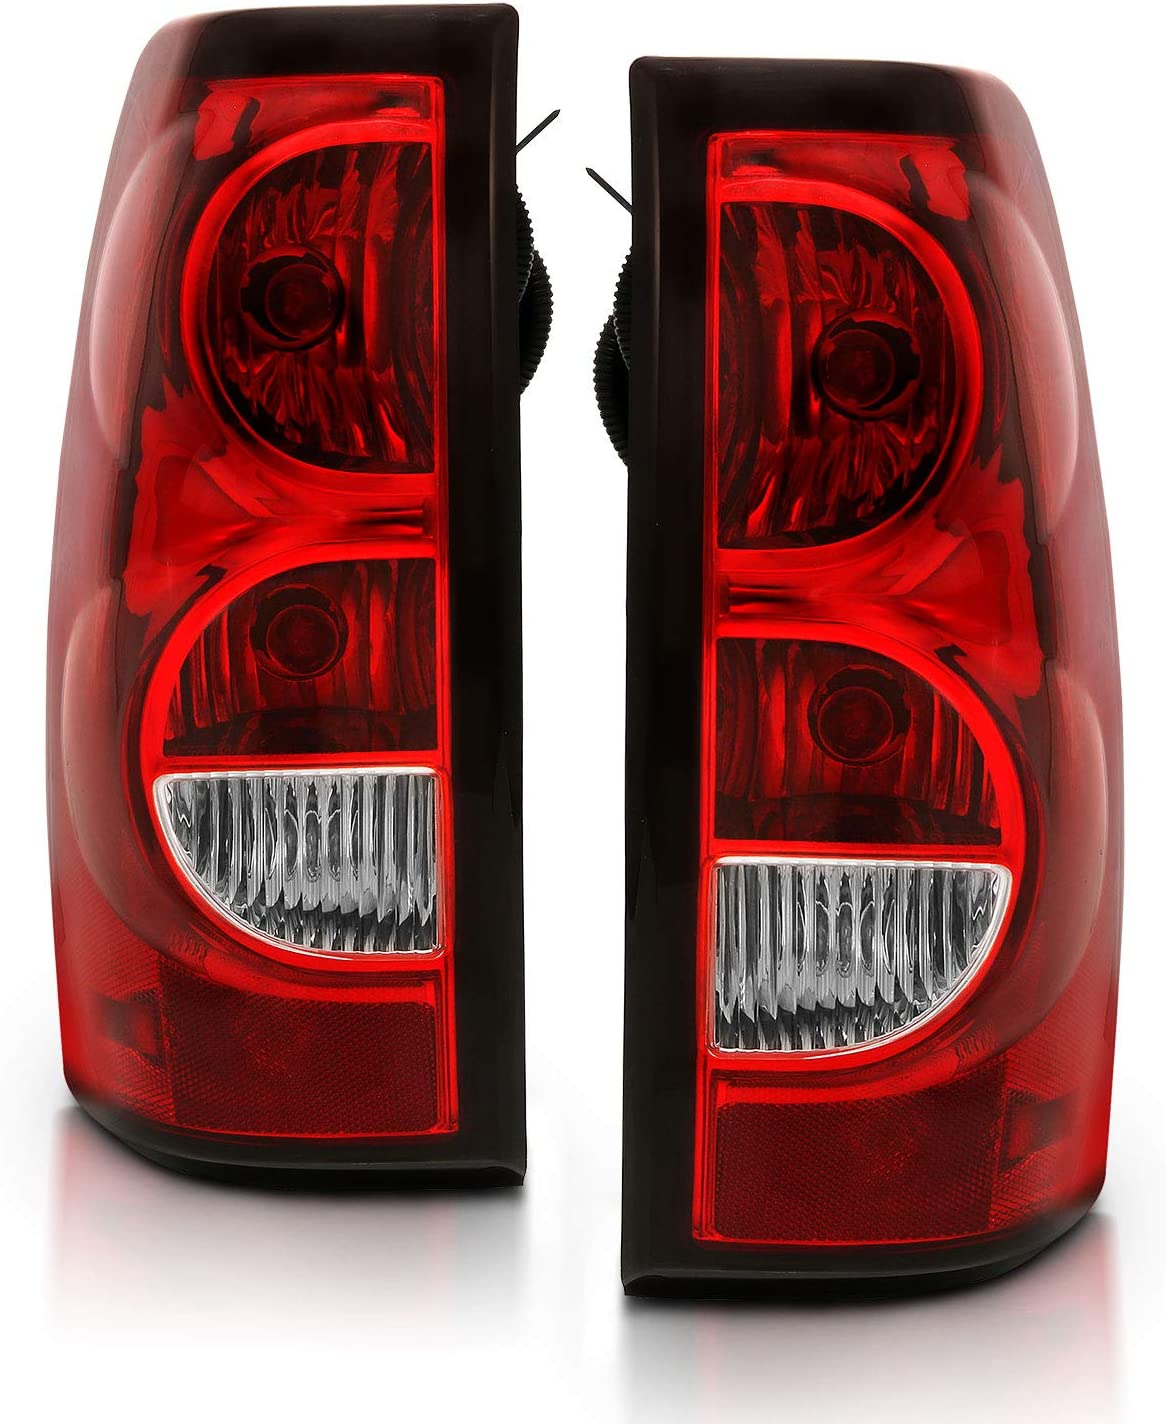 1500 2500 3500 Left /& Right Sides Pair Classic Epic Lighting OE Style Replacement Rear Brake Tail Lights for 2004-2007 Chevrolet Silverado GM2800174 GM2801174 15273473 15844157 15273472 15844156